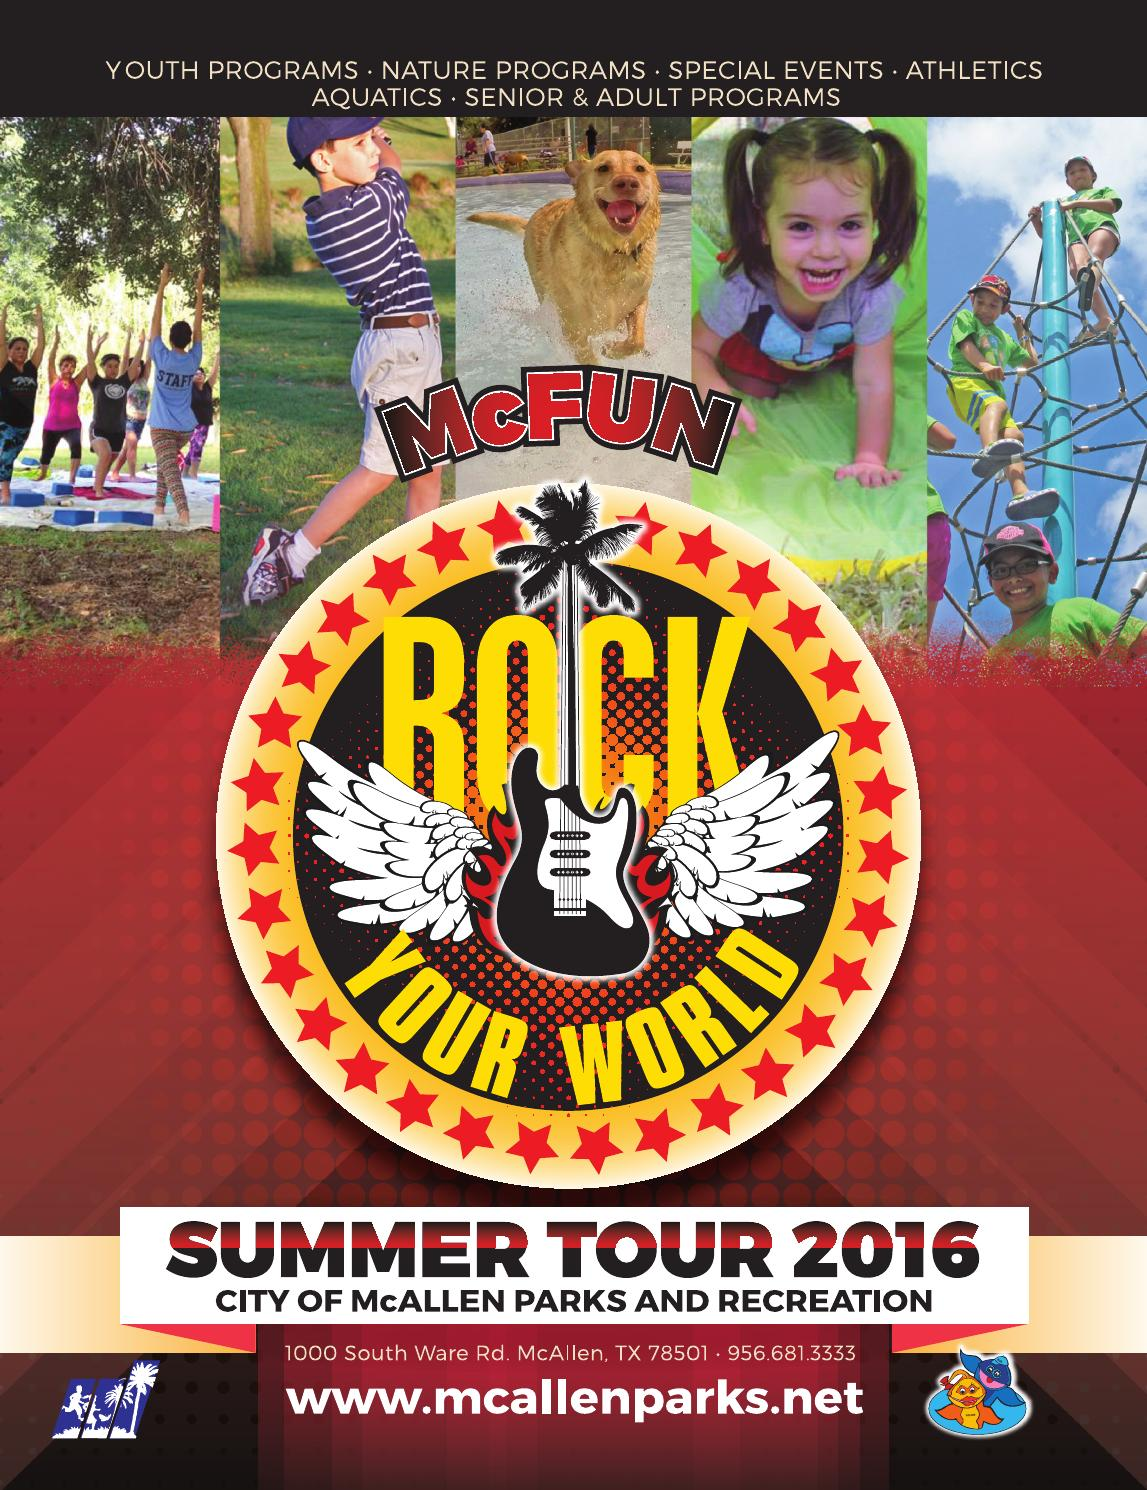 Mcfun summer 2016 by mcallen parks and recreation issuu 1betcityfo Gallery